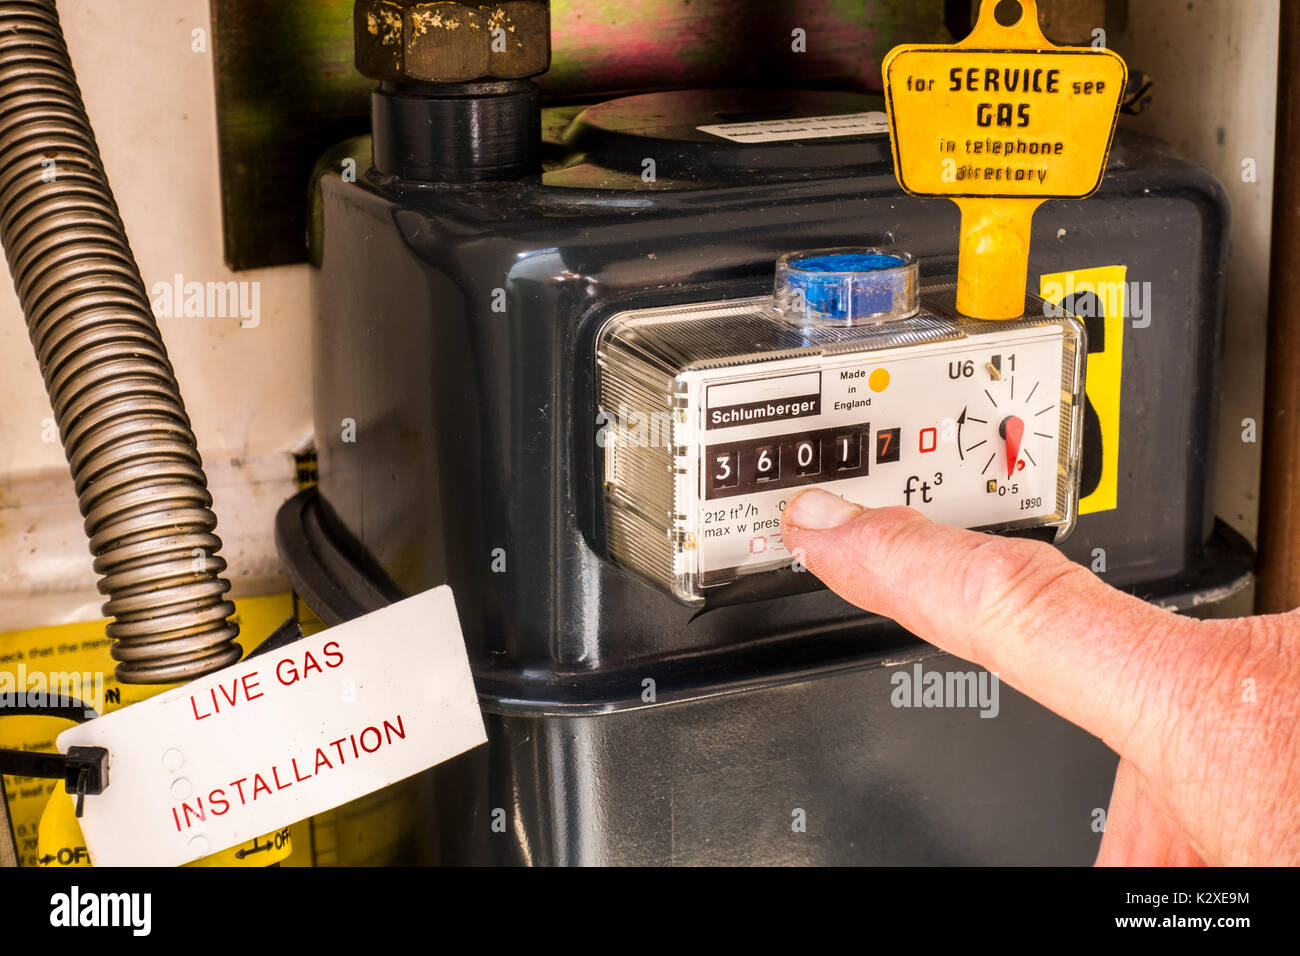 Inside a gas meter cupboard with a yellow key on top of the sealed meter and a finger pointing at the consumption reading. East Midlands, England, UK. - Stock Image